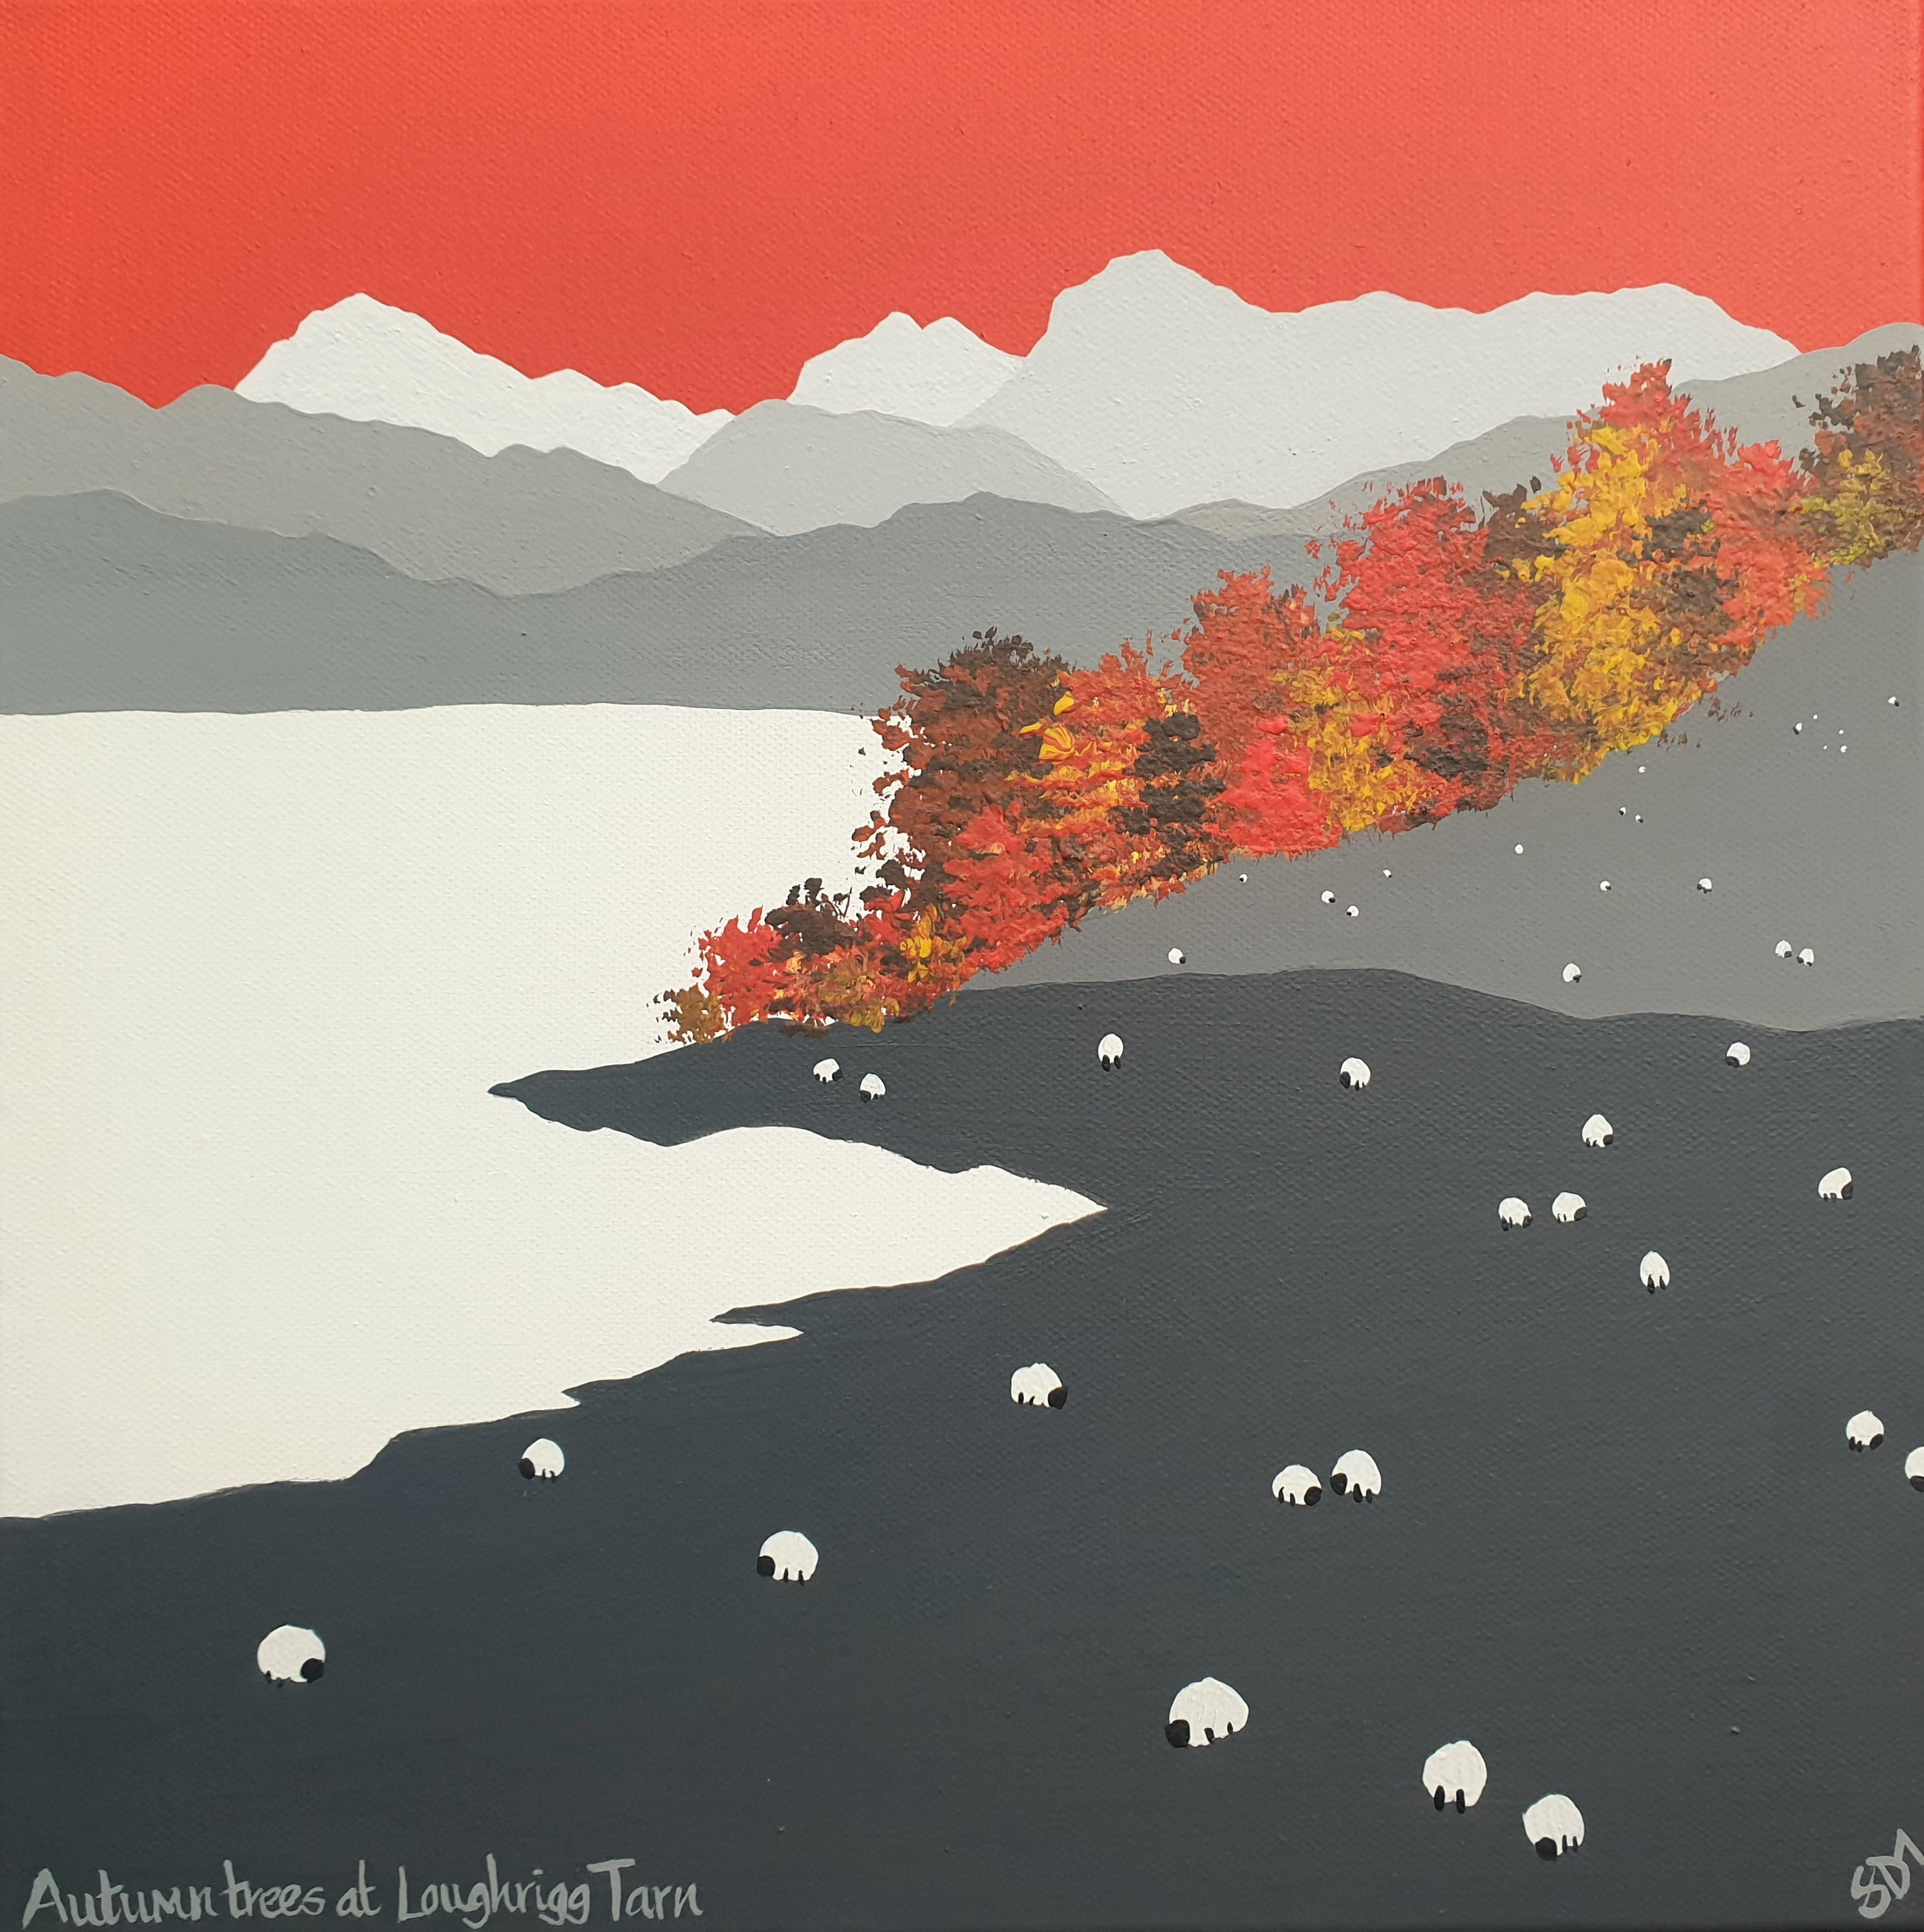 Autumn trees at Loughrigg Tarn